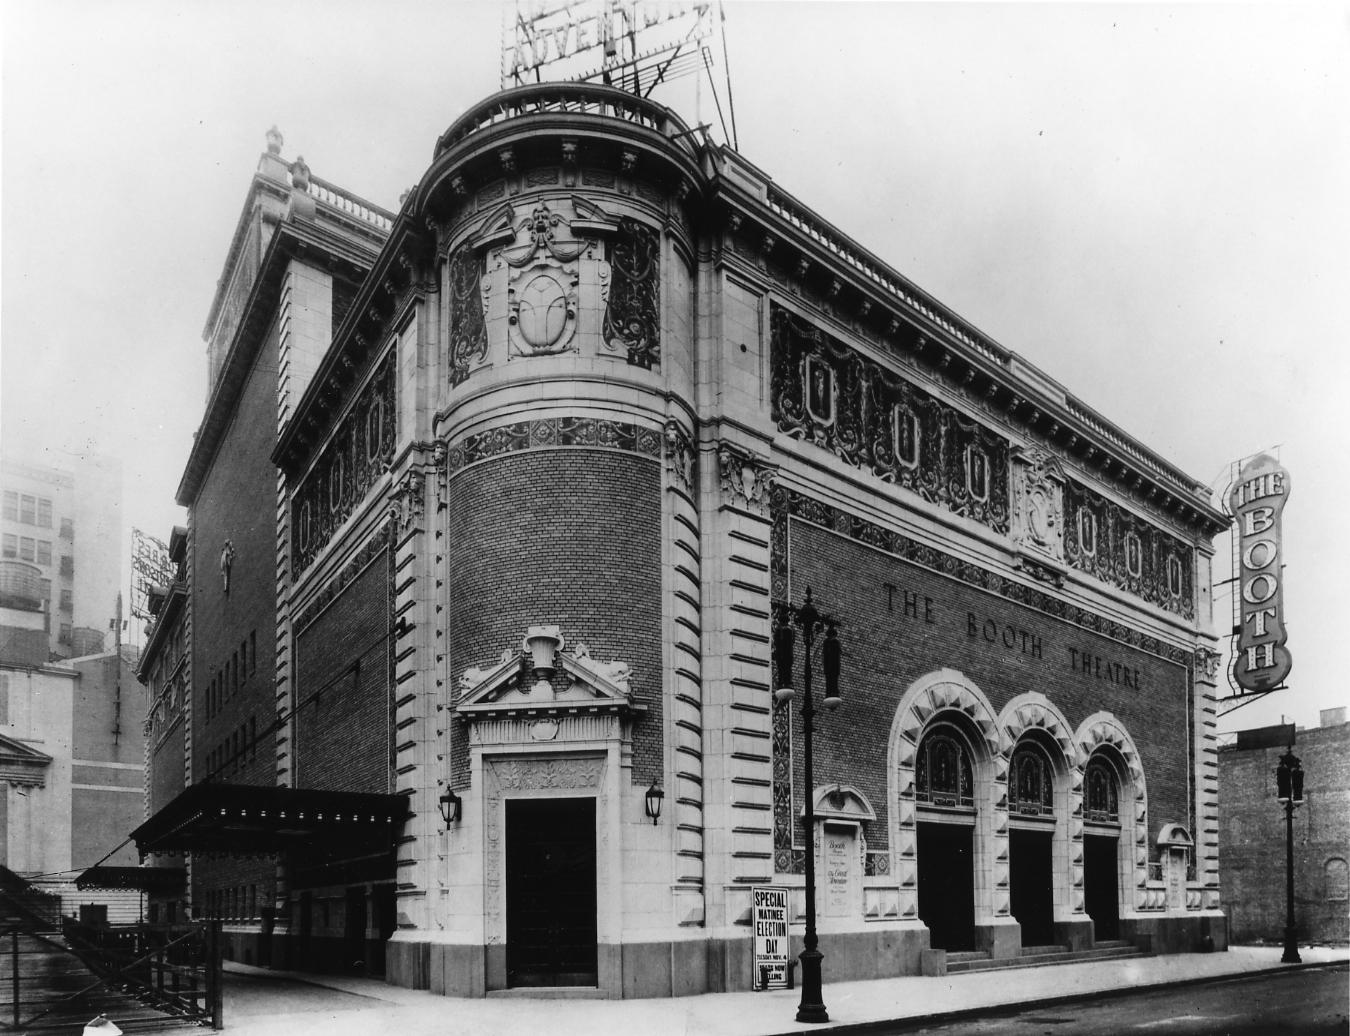 Booth Theatre, 1913 (image from the Shubert Archives)